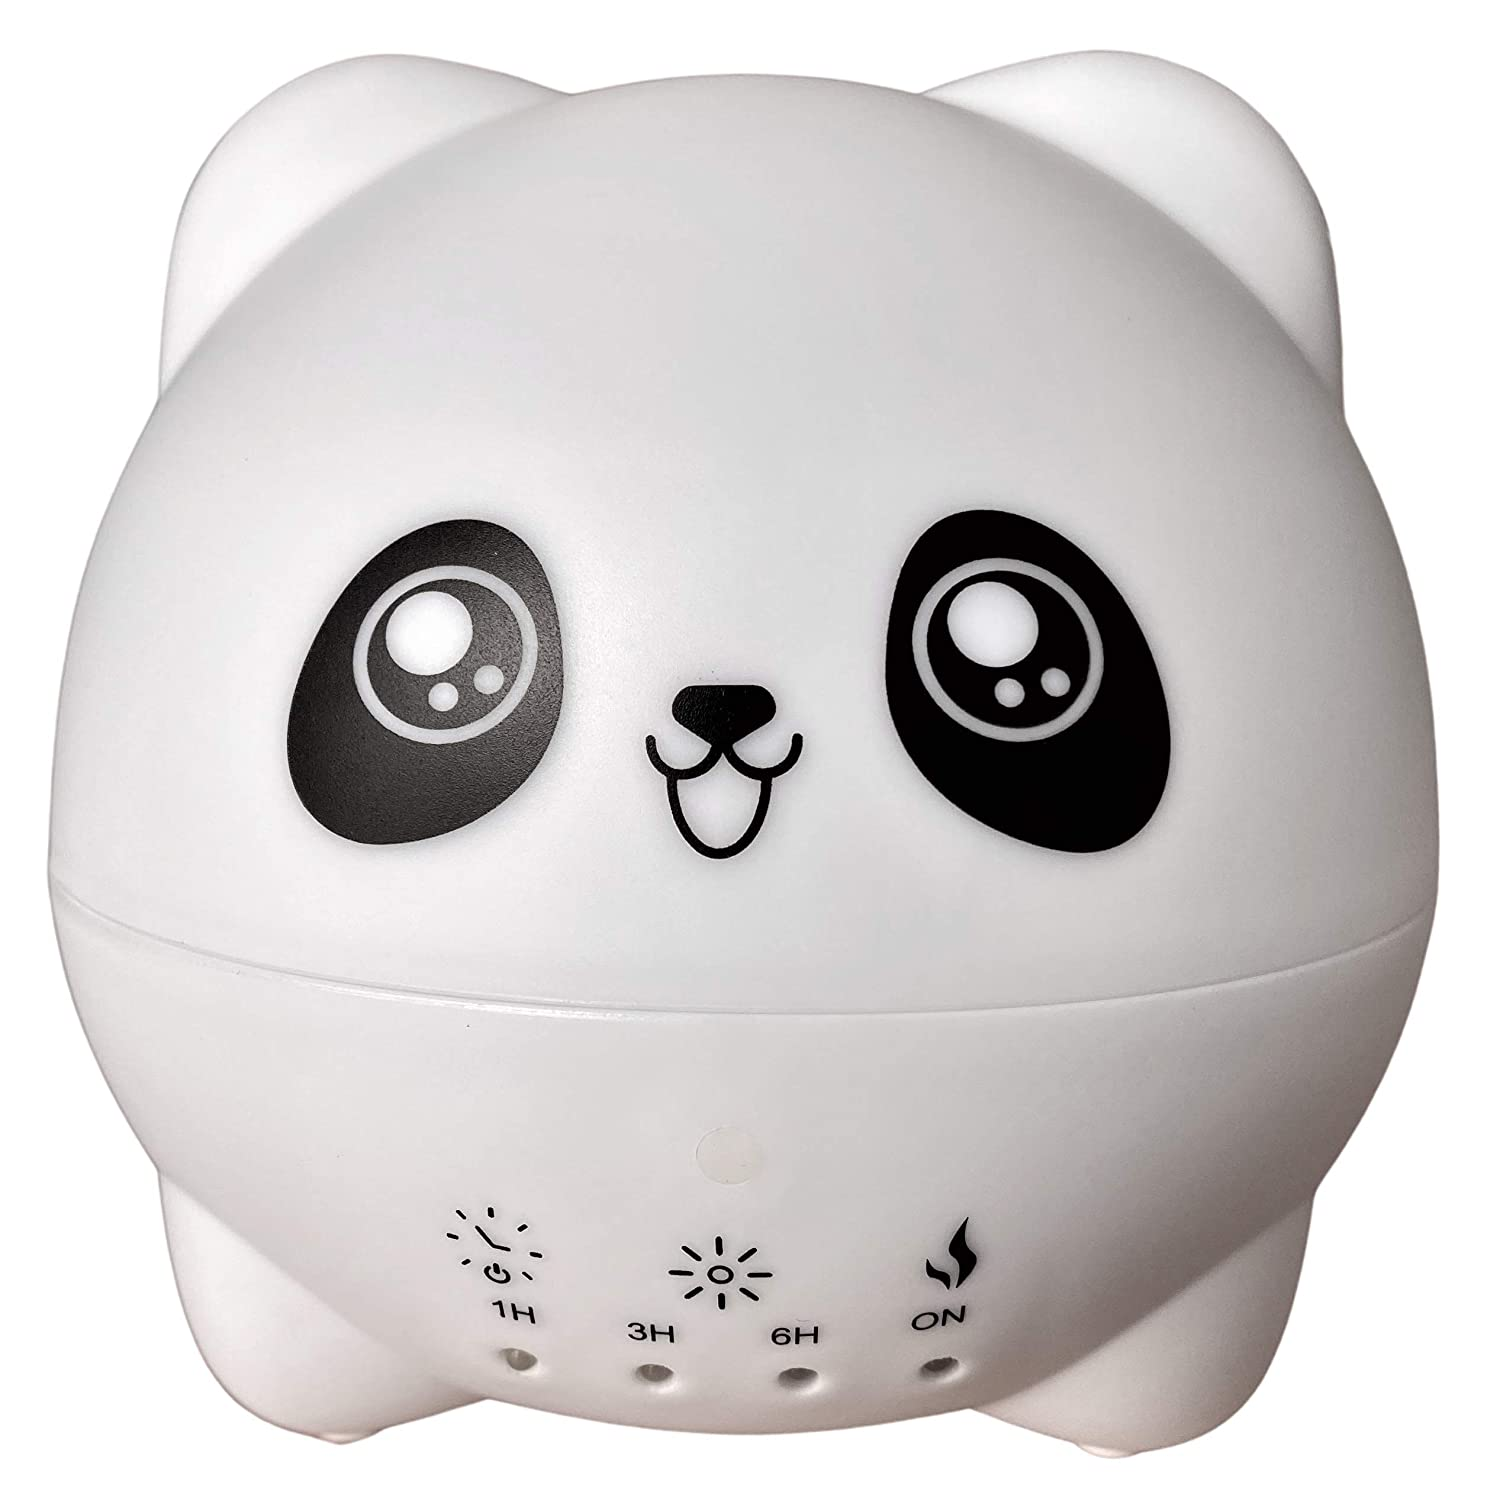 Ultrasonic Aromatherapy Diffuser for Kids-Cute Panda Cool Mist Humidifier for Essential Oils and Night Light-300ml-perfect Diffuser for Child Room and Baby Safe